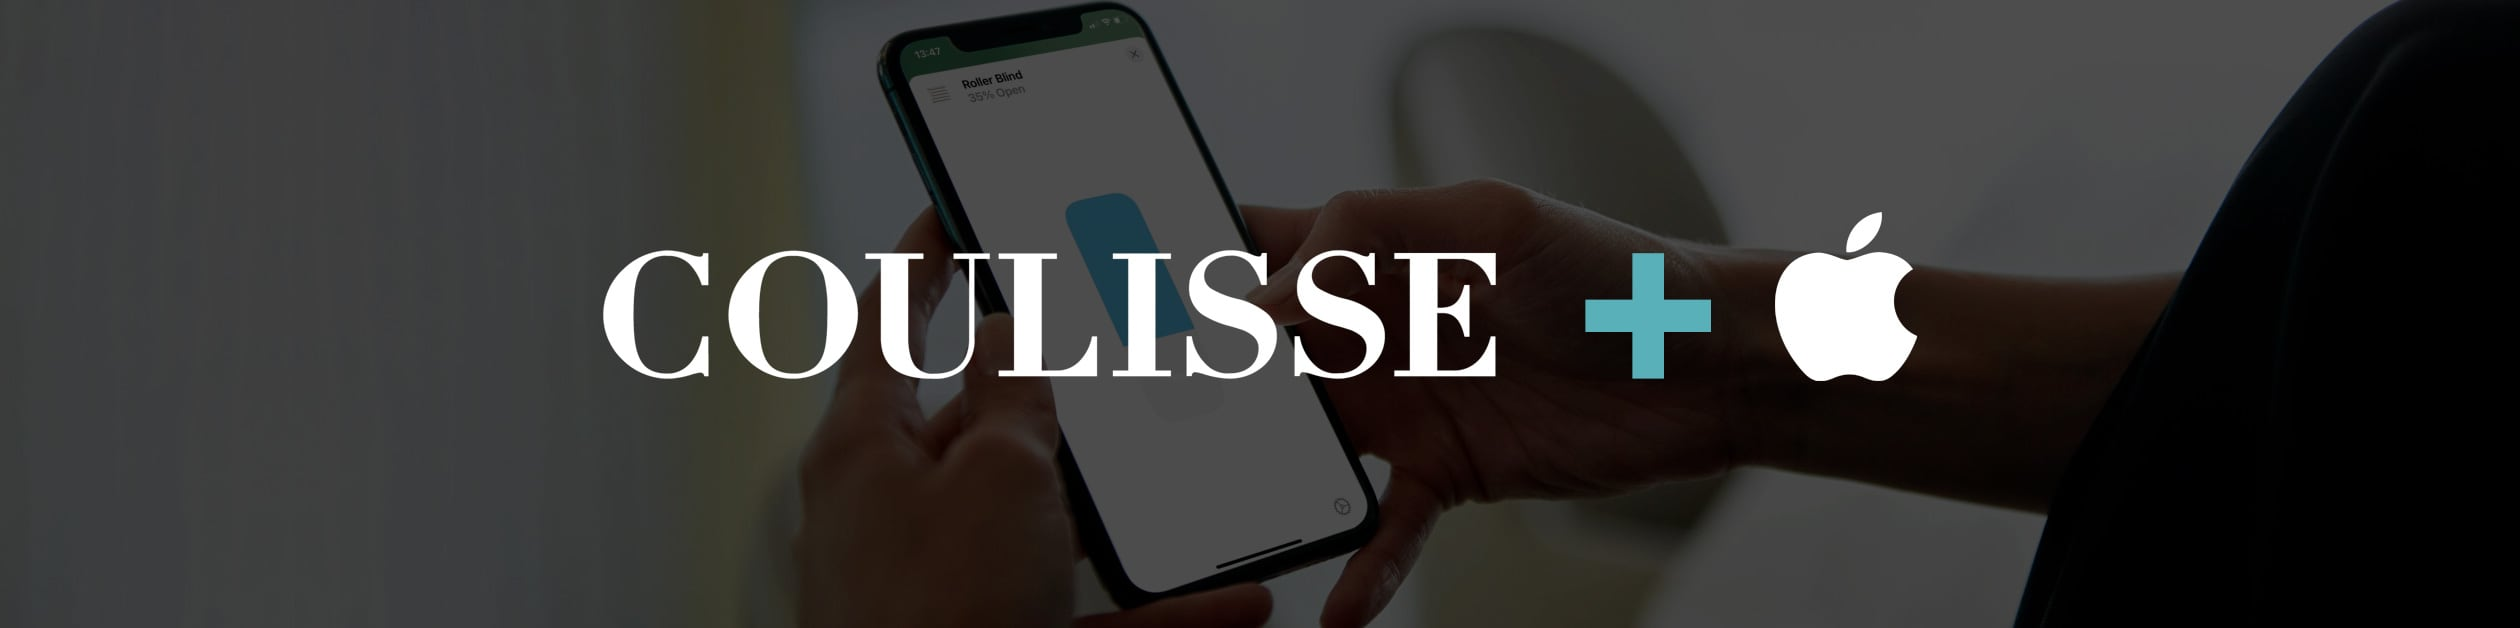 Coulisse Announces Apple HomeKit Support